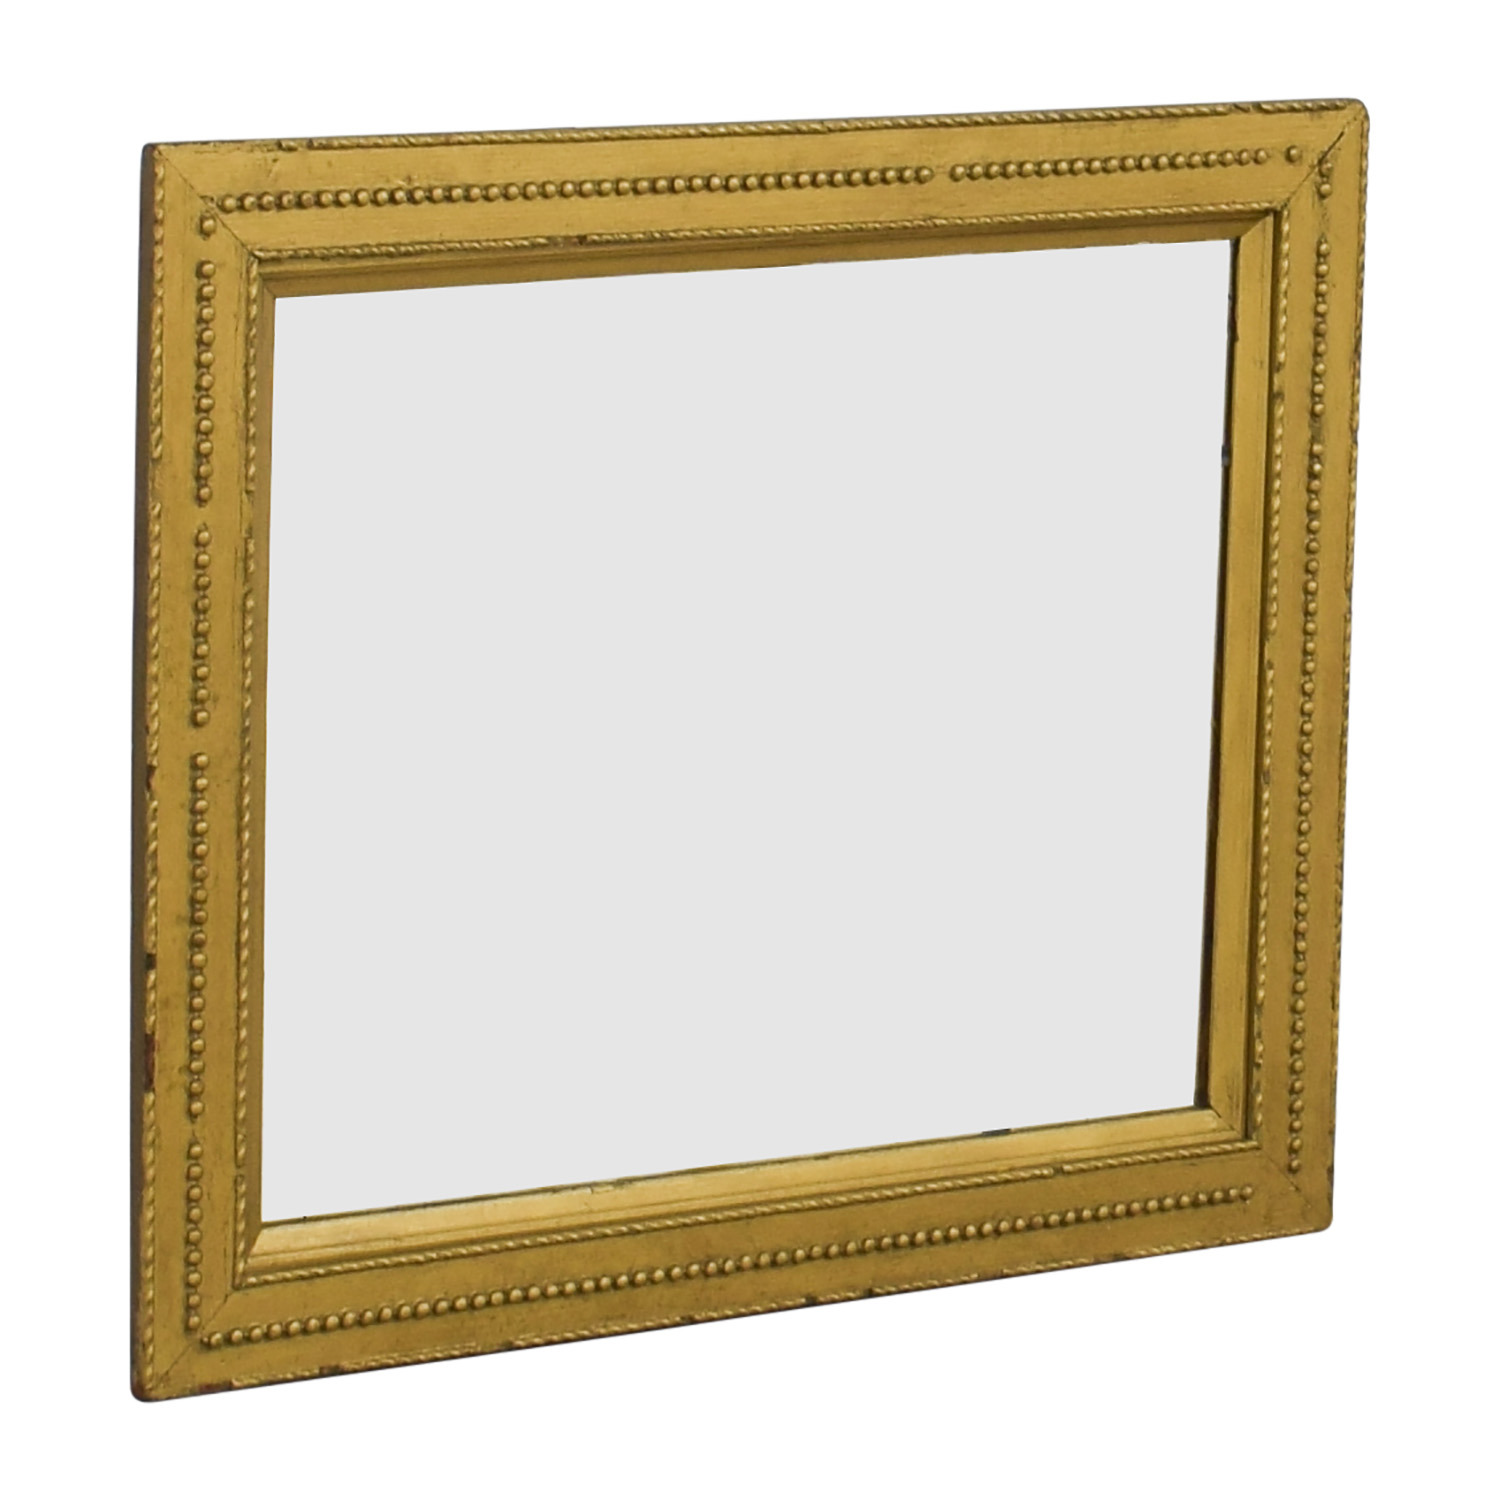 Rustic Gold Framed Mirror discount